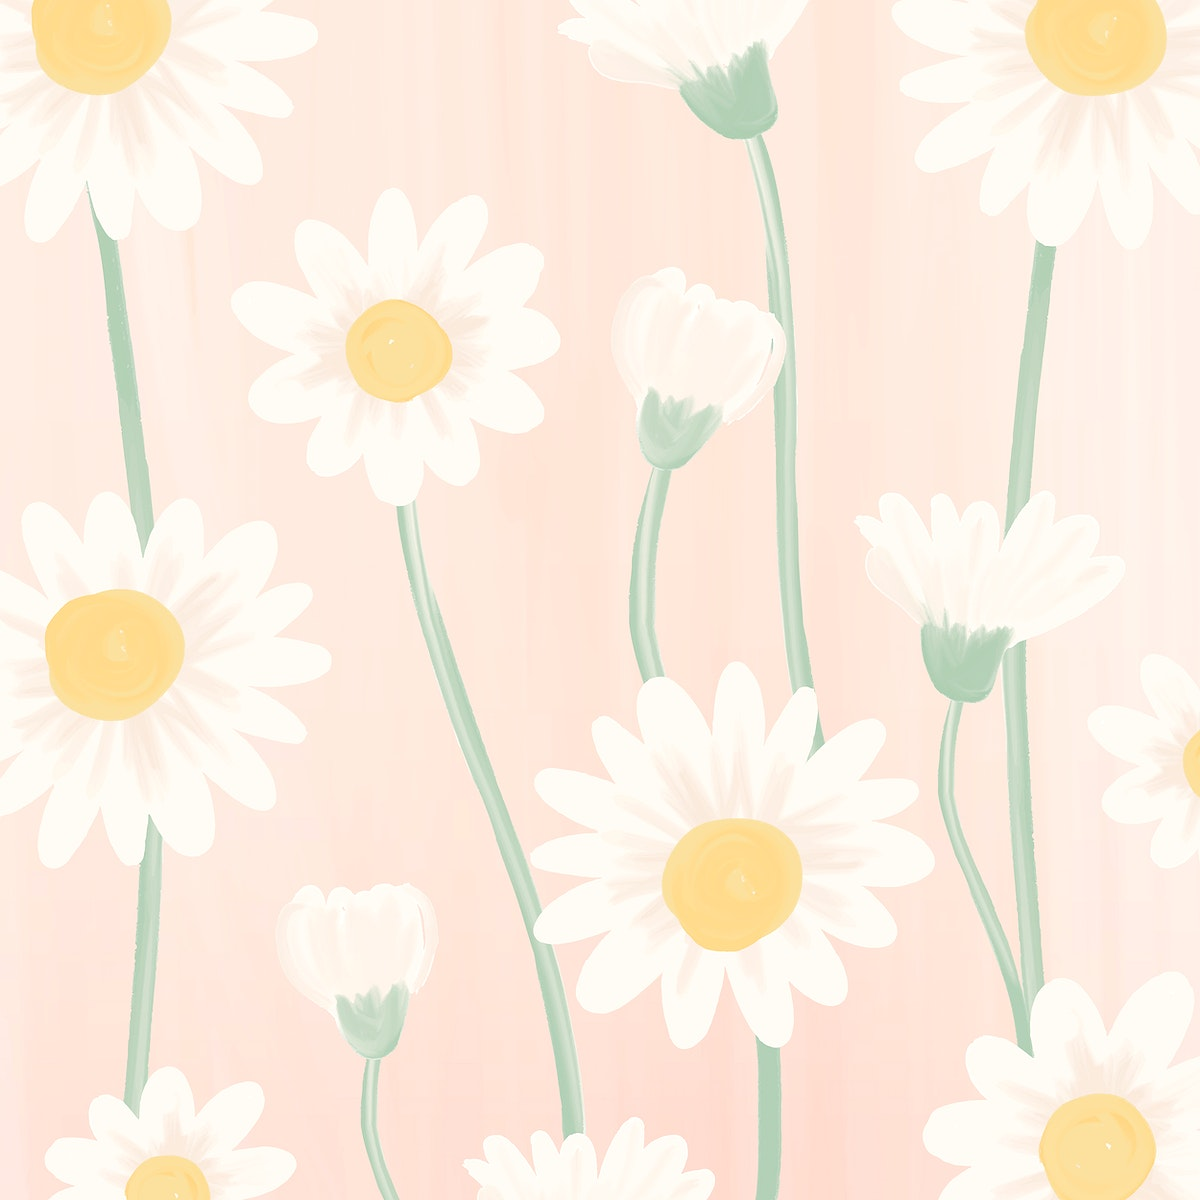 Hand drawn daisy patterned background vector